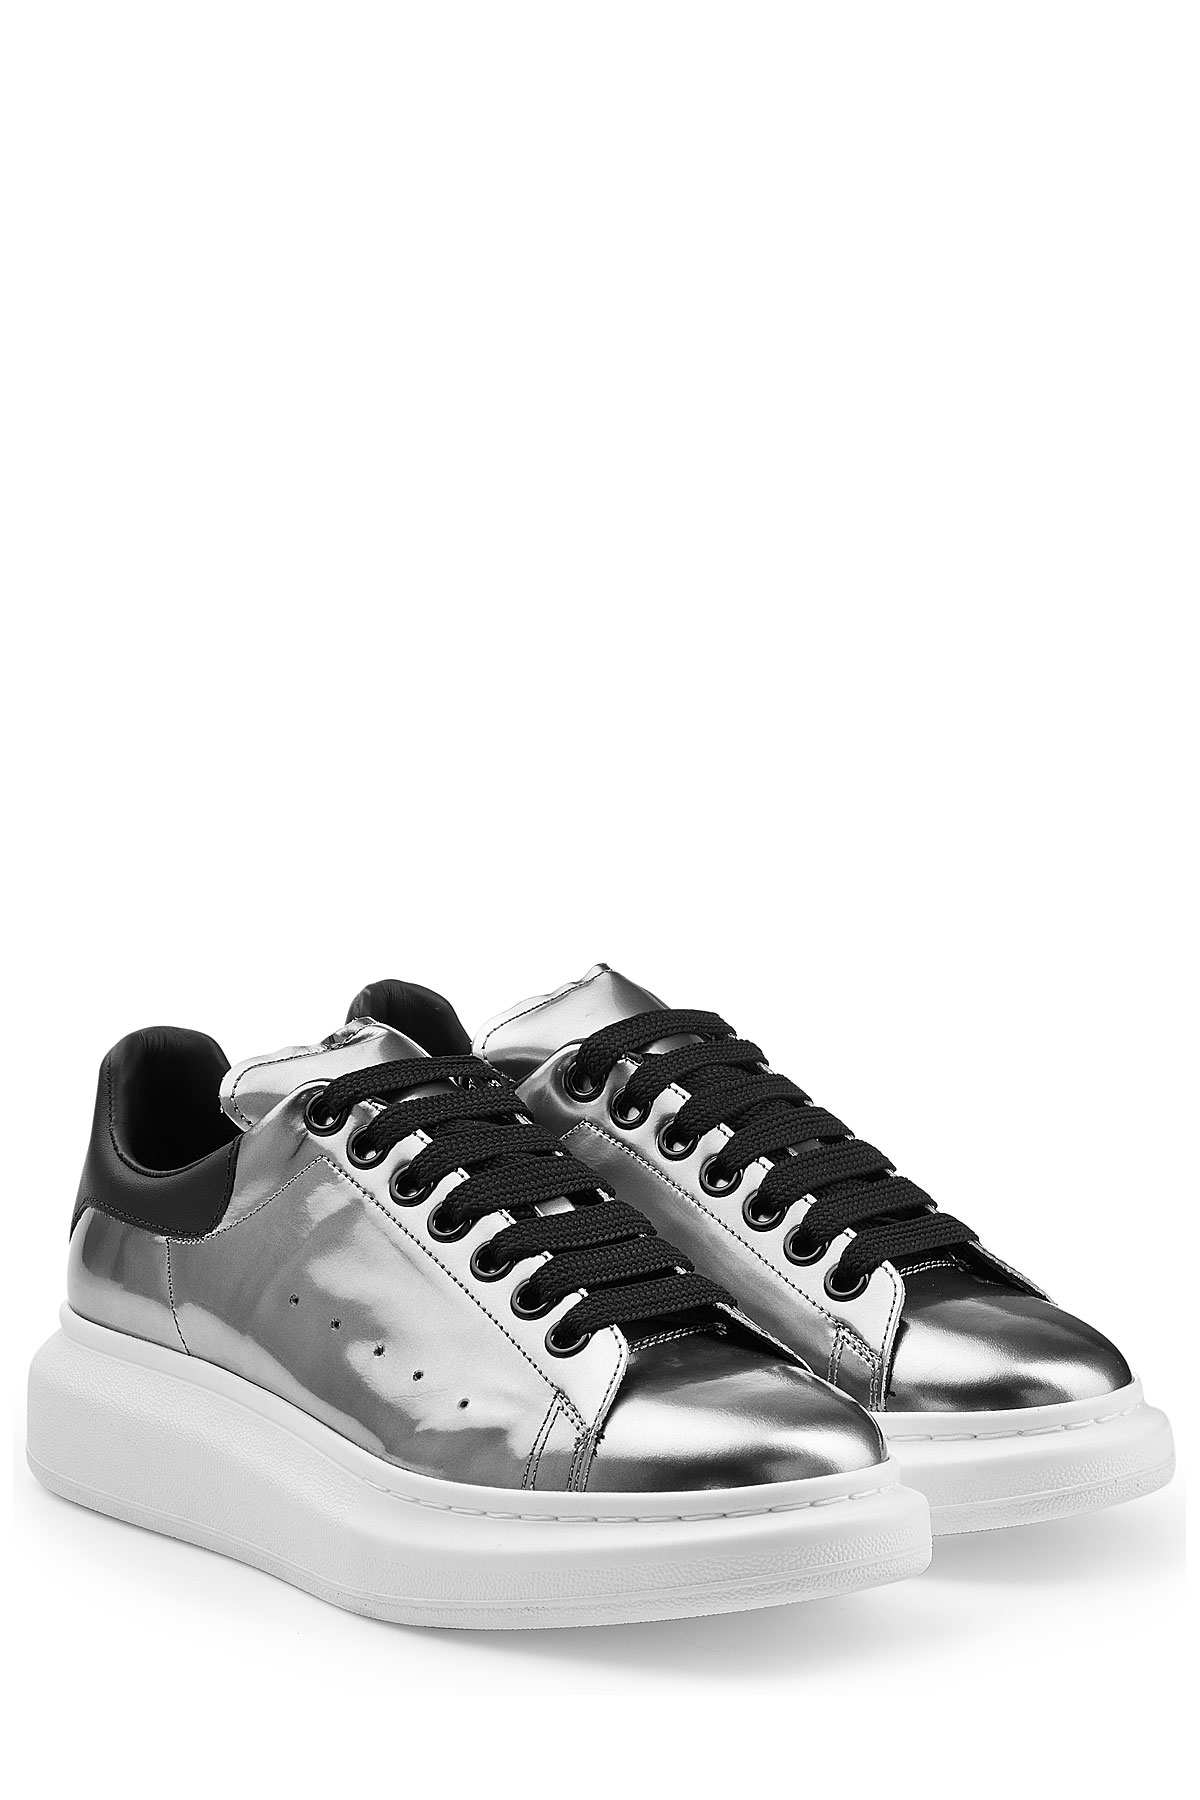 Alexander McQueen White Patent Leather & Mesh Sneakers N1cLq